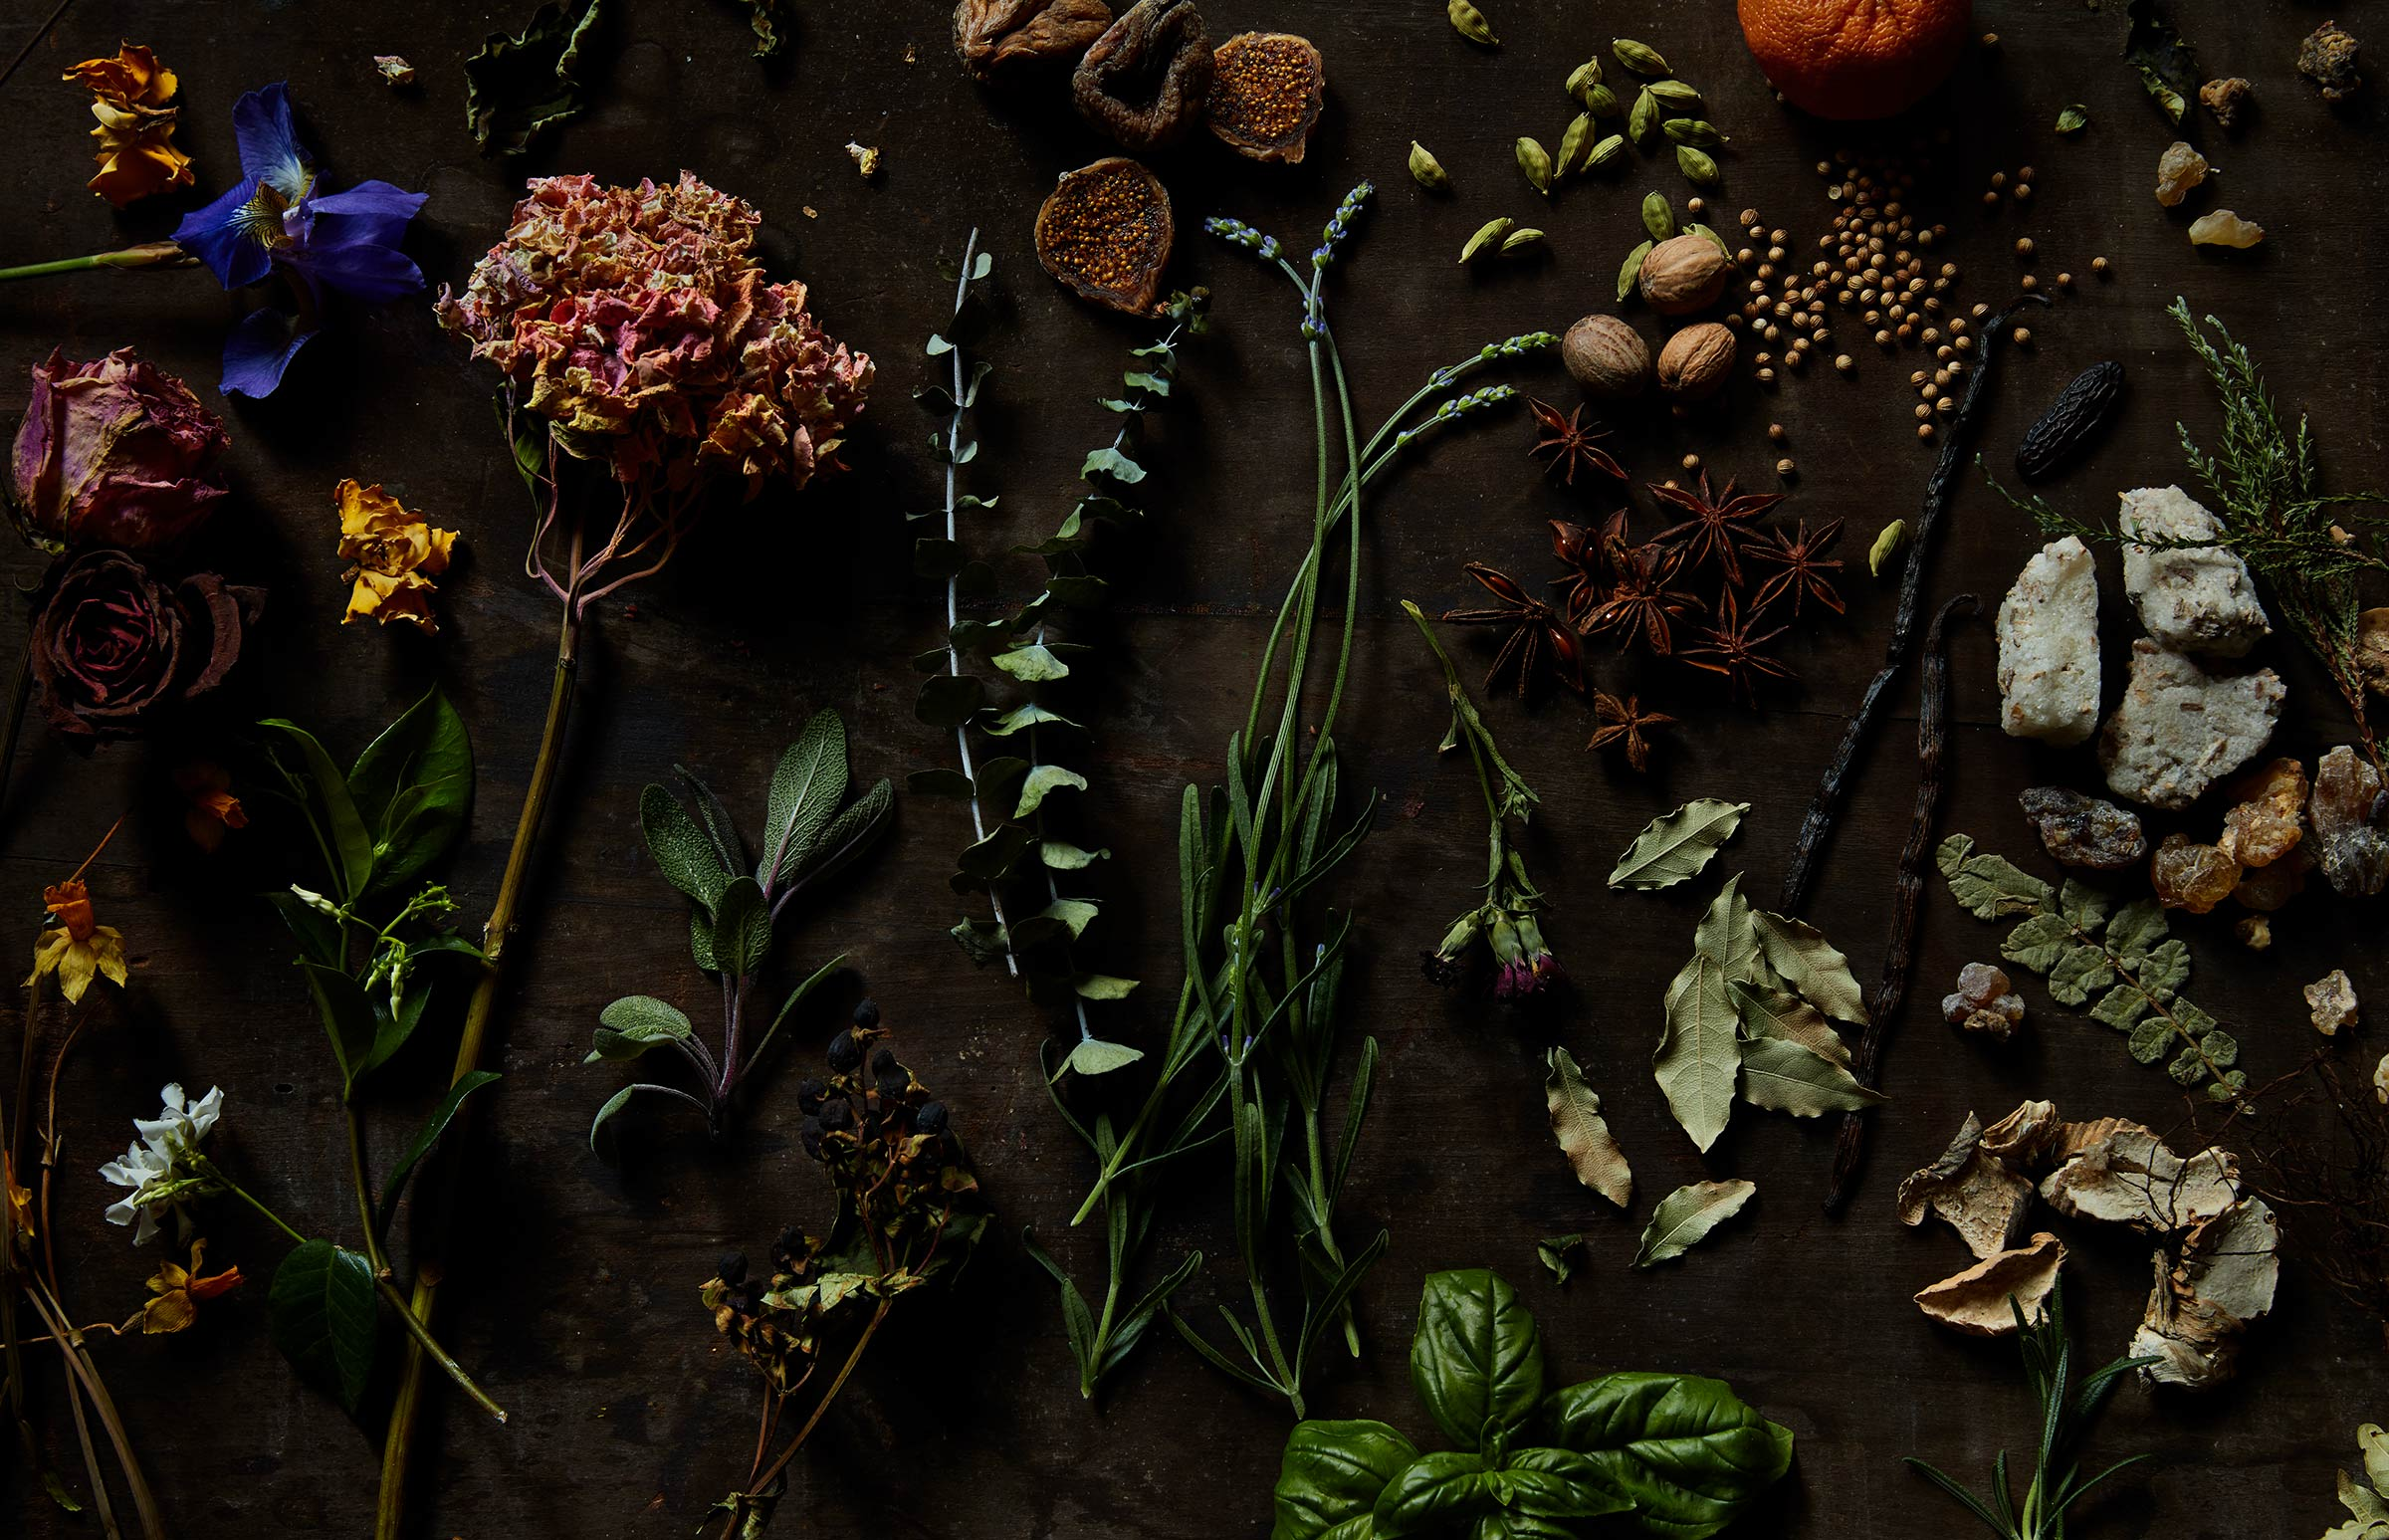 natural plants, leaves and minerals laid out in a fine art composition